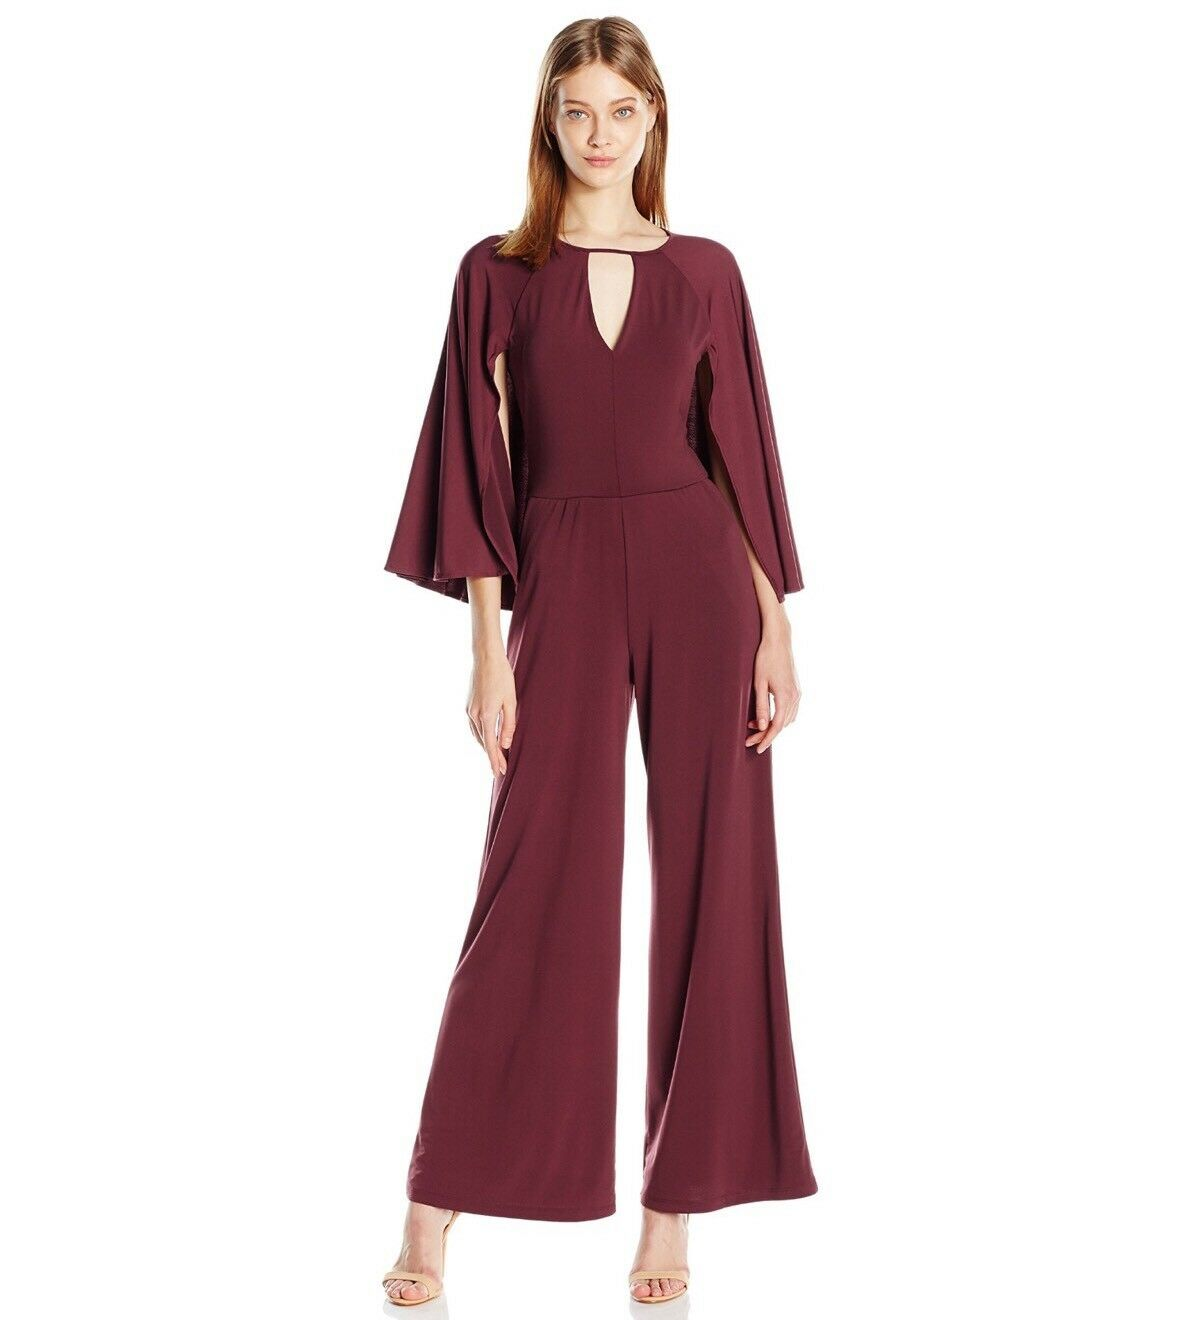 c8c0a646b94 Guess Micah Wide Leg Jumpsuit With Size S Cape Women s nvsuve2353 ...